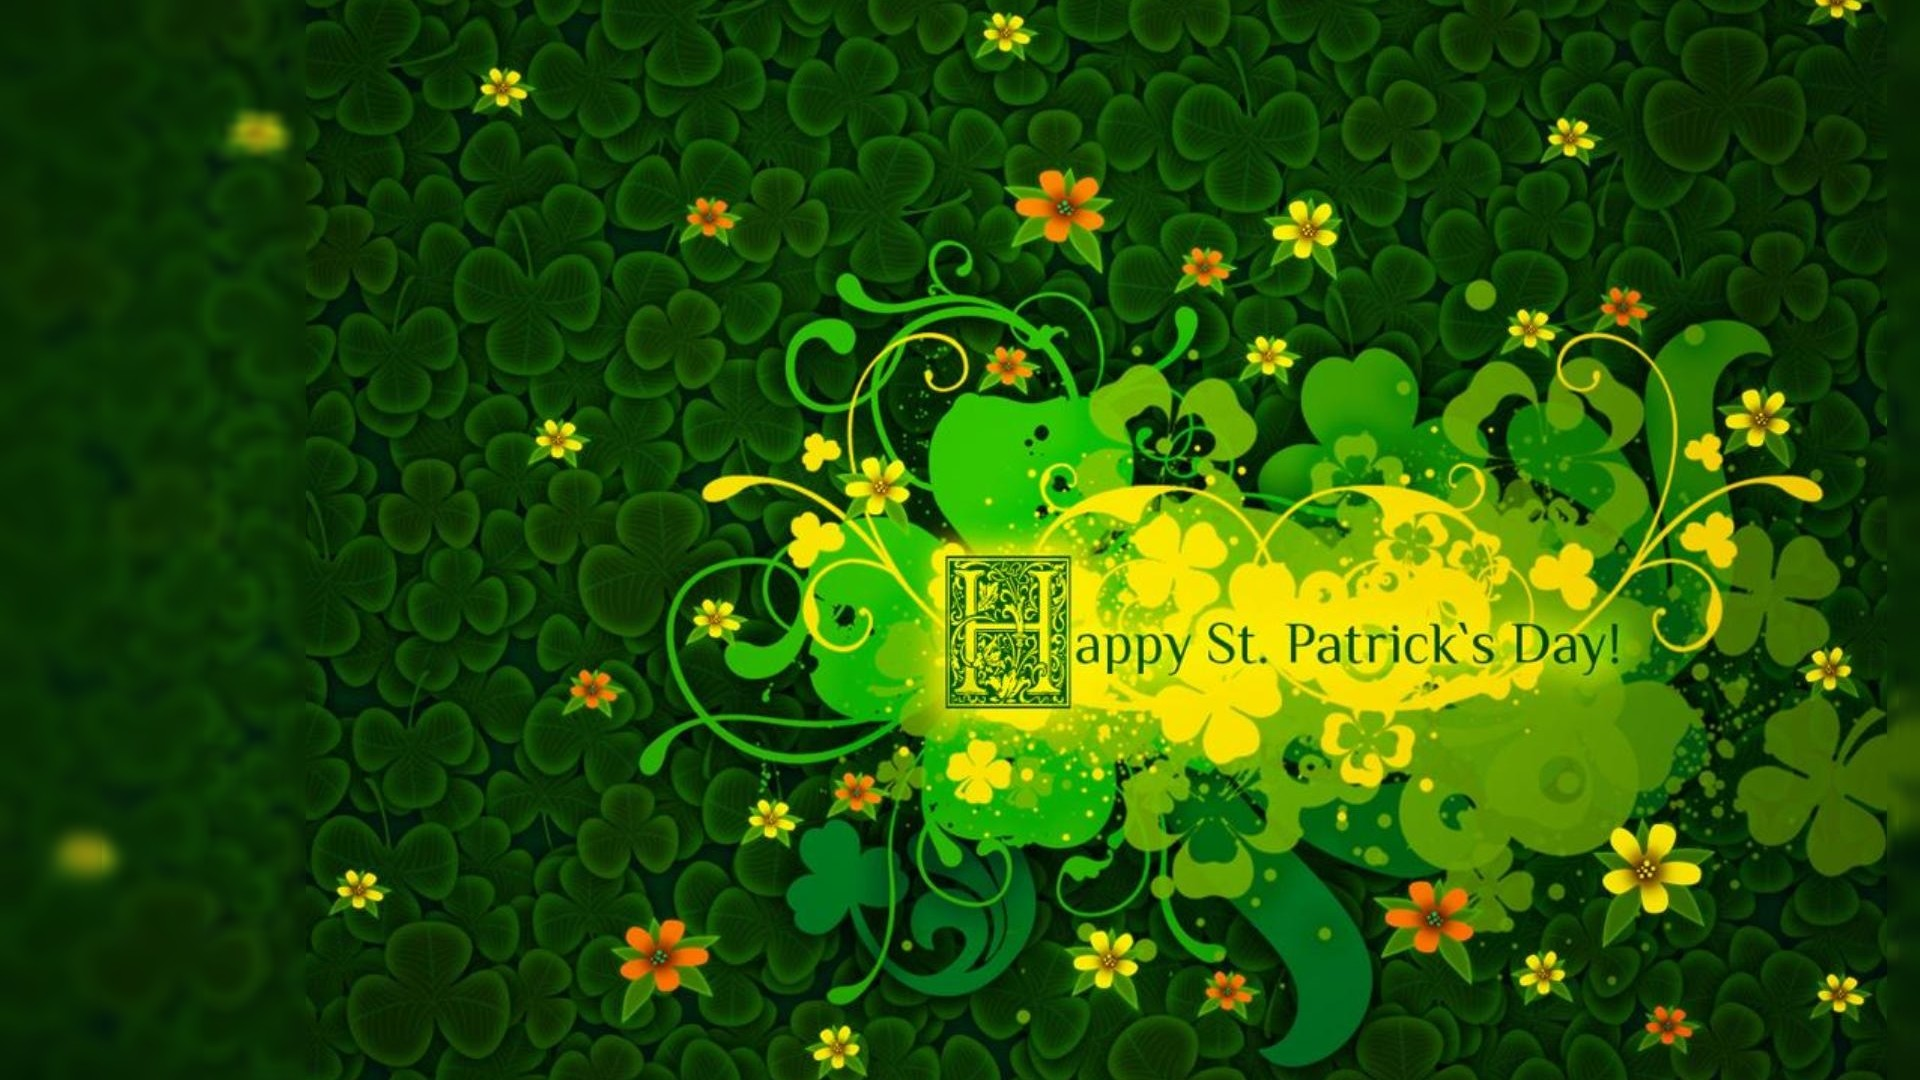 1920x1080 Free Desktop St Patricks Day Wallpapers Download Photo.